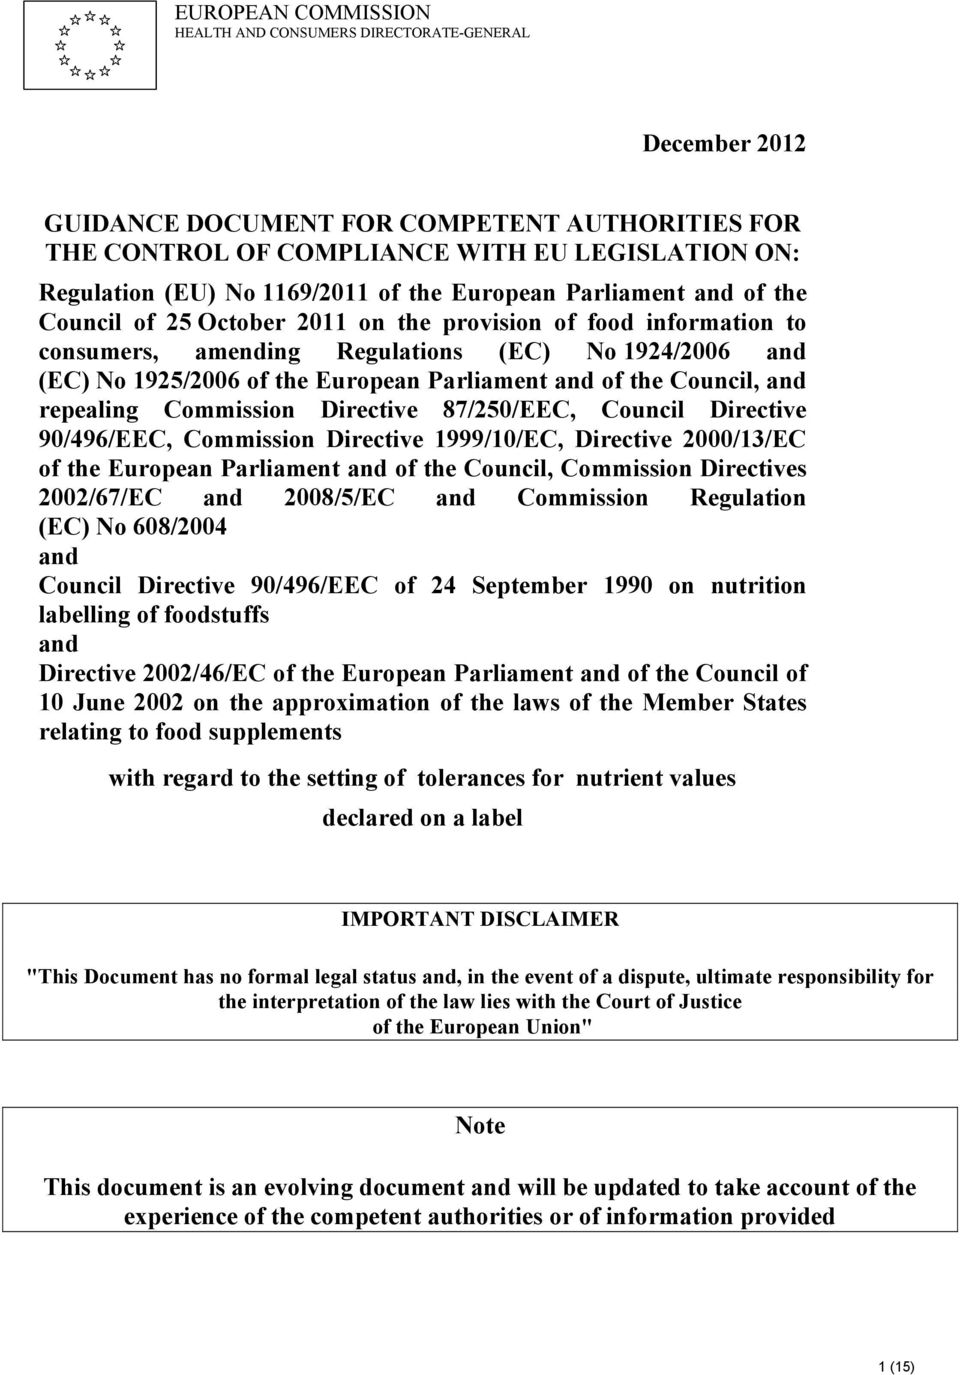 European Parliament and of the Council, and repealing Commission Directive 87/250/EEC, Council Directive 90/496/EEC, Commission Directive 1999/10/EC, Directive 2000/13/EC of the European Parliament